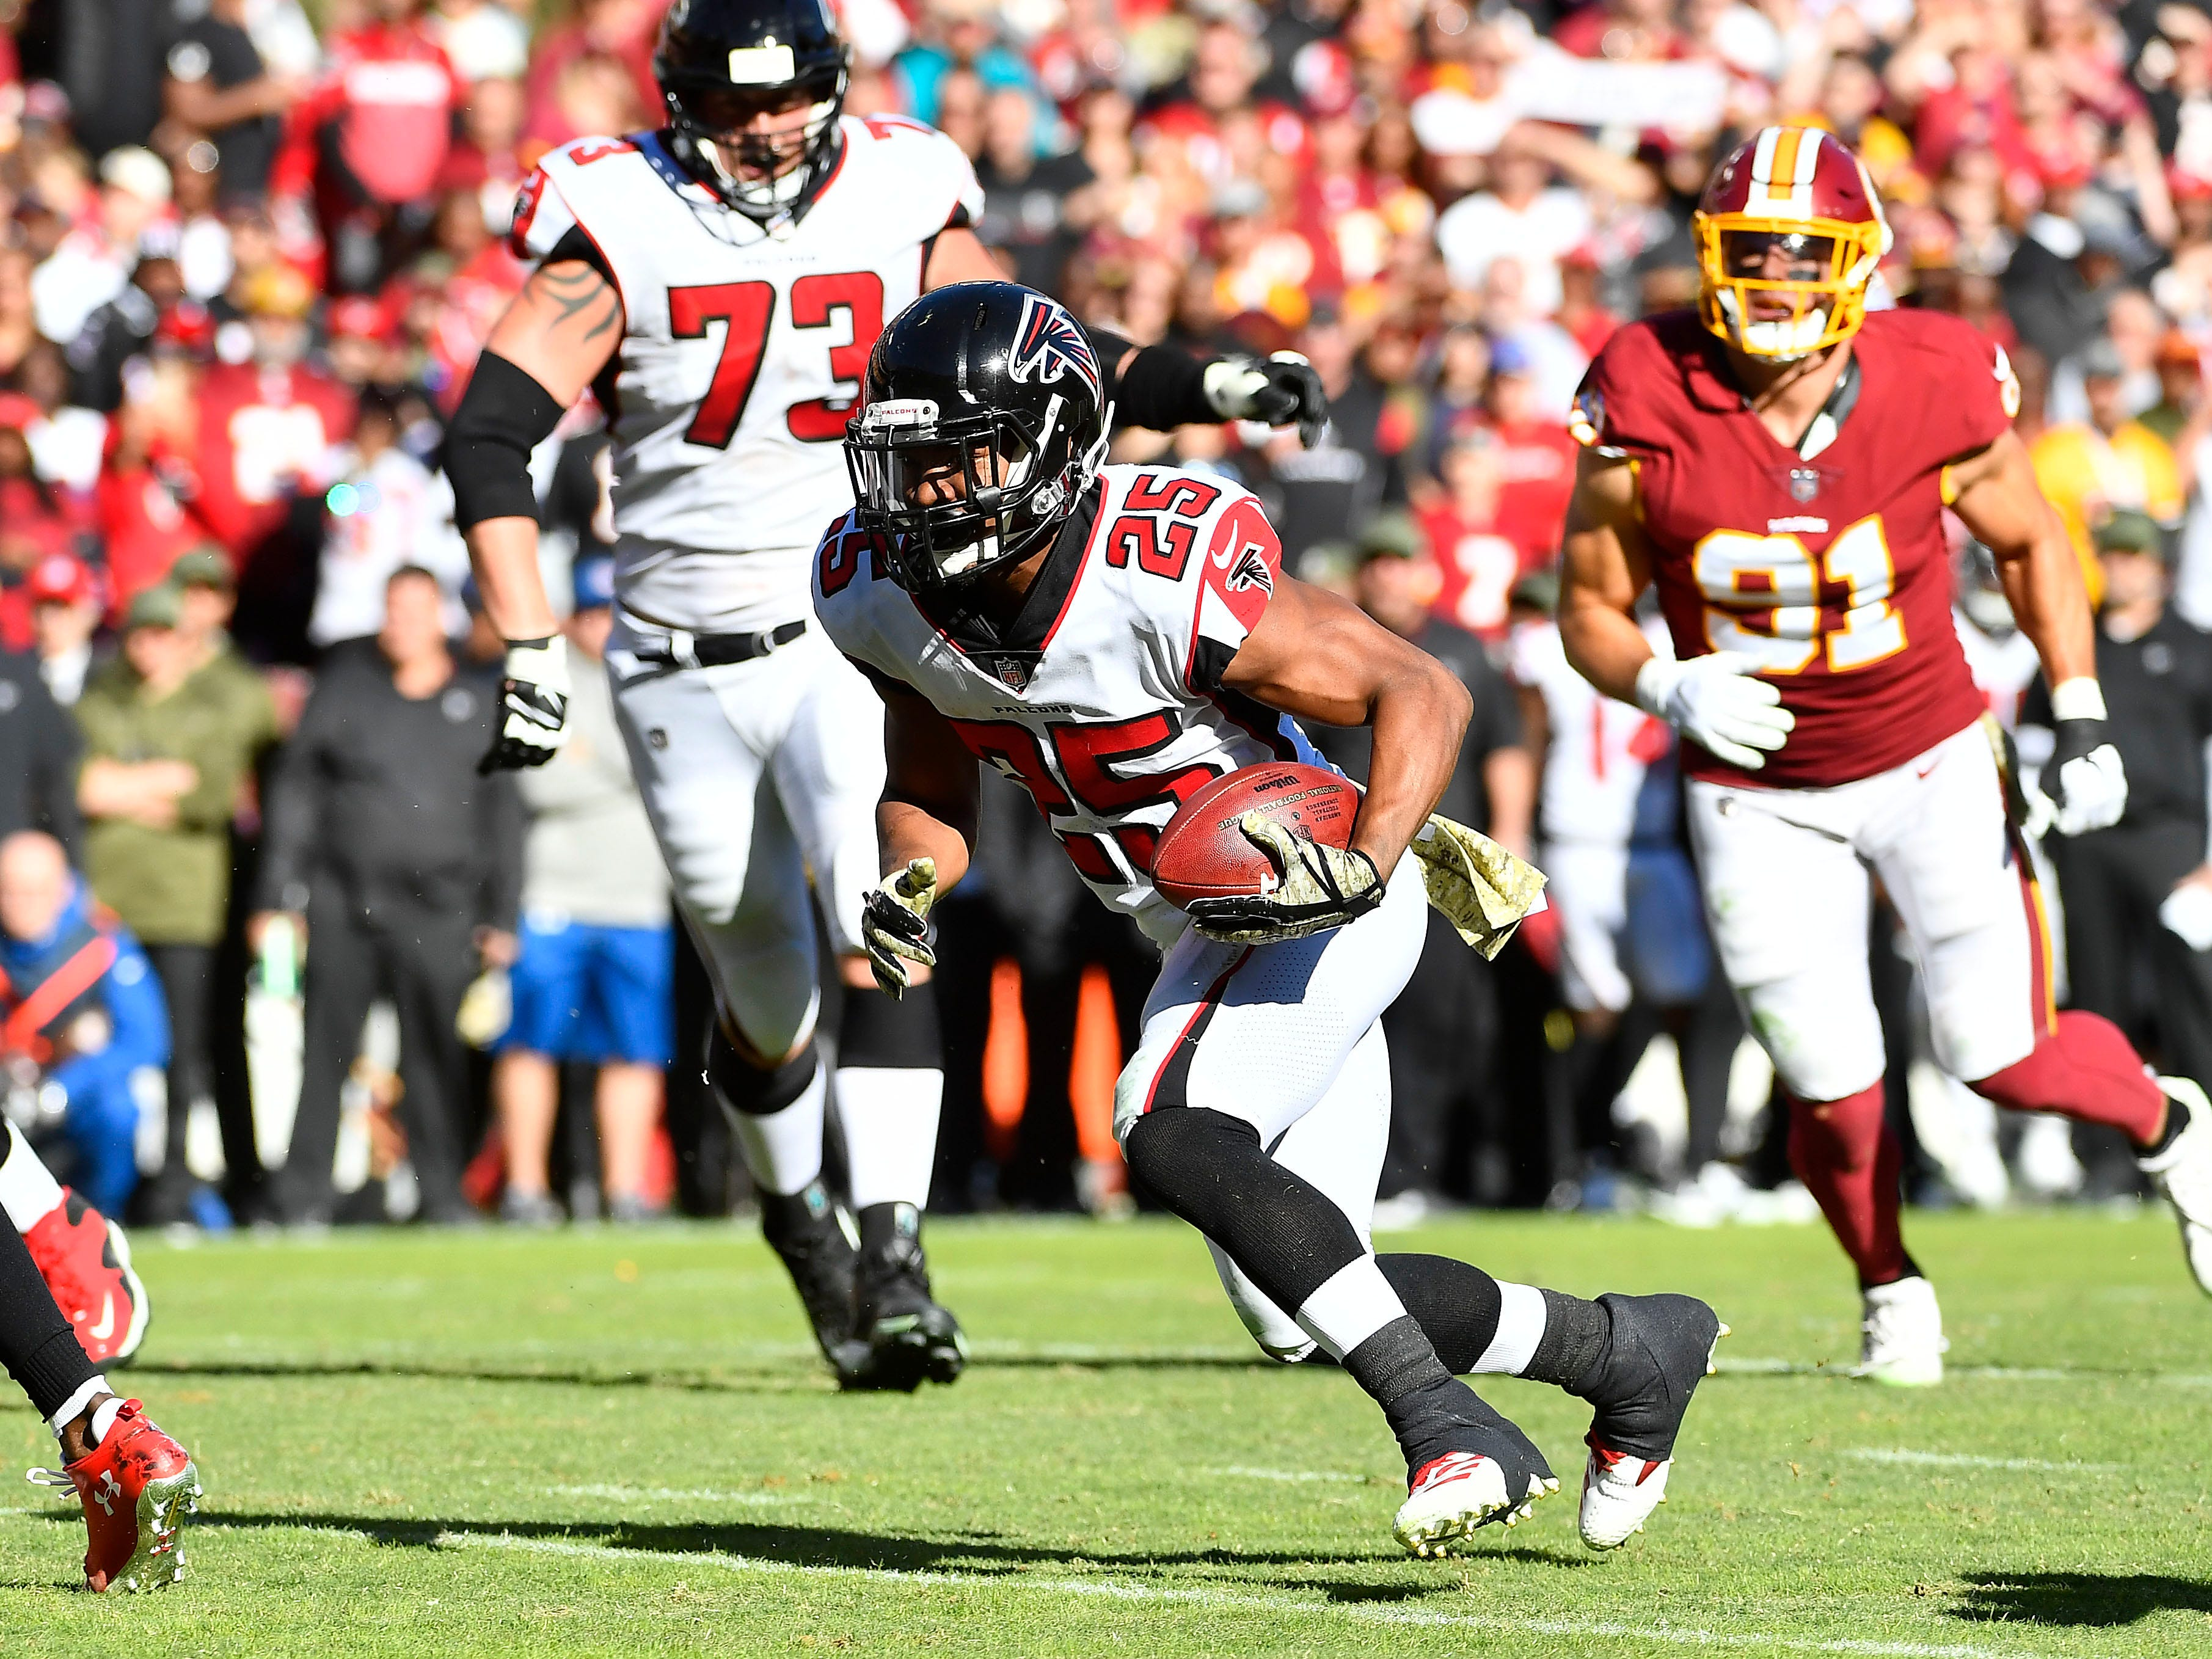 Atlanta Falcons running back Ito Smith (25) is on his way to the end zone in the first half against the Washington Redskins at FedExField.